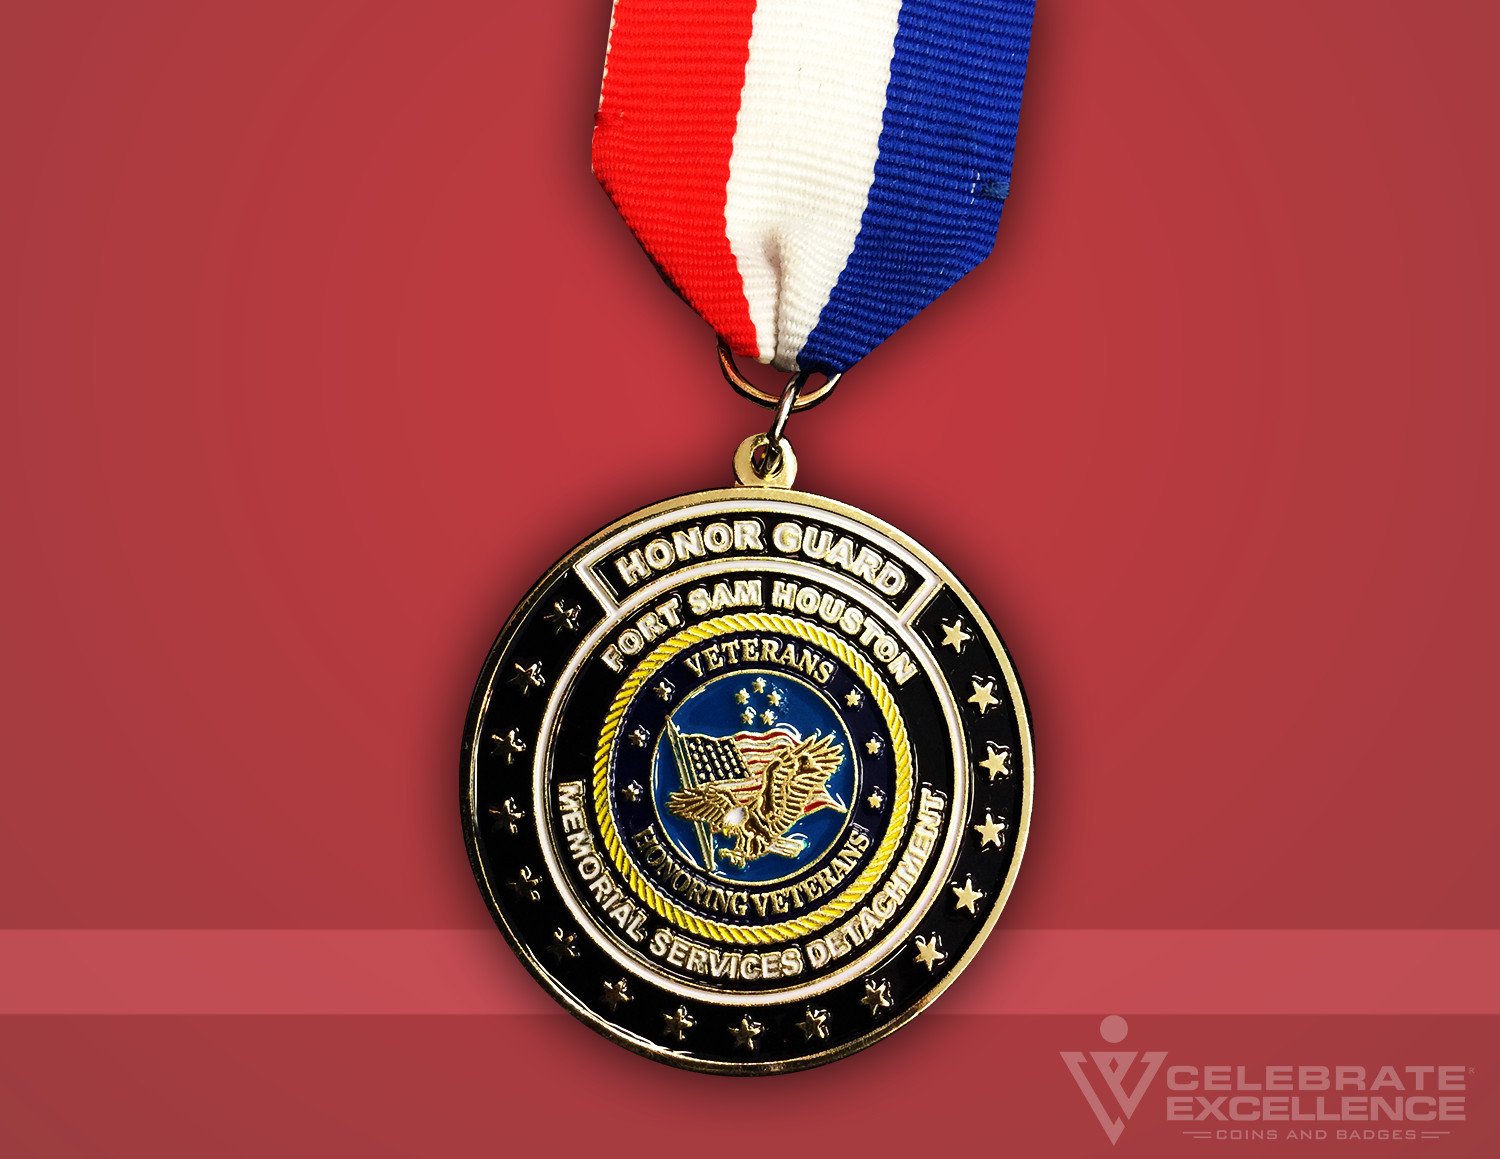 Celebrate Excellence Honor Guard Memorial Services Fiesta Medal